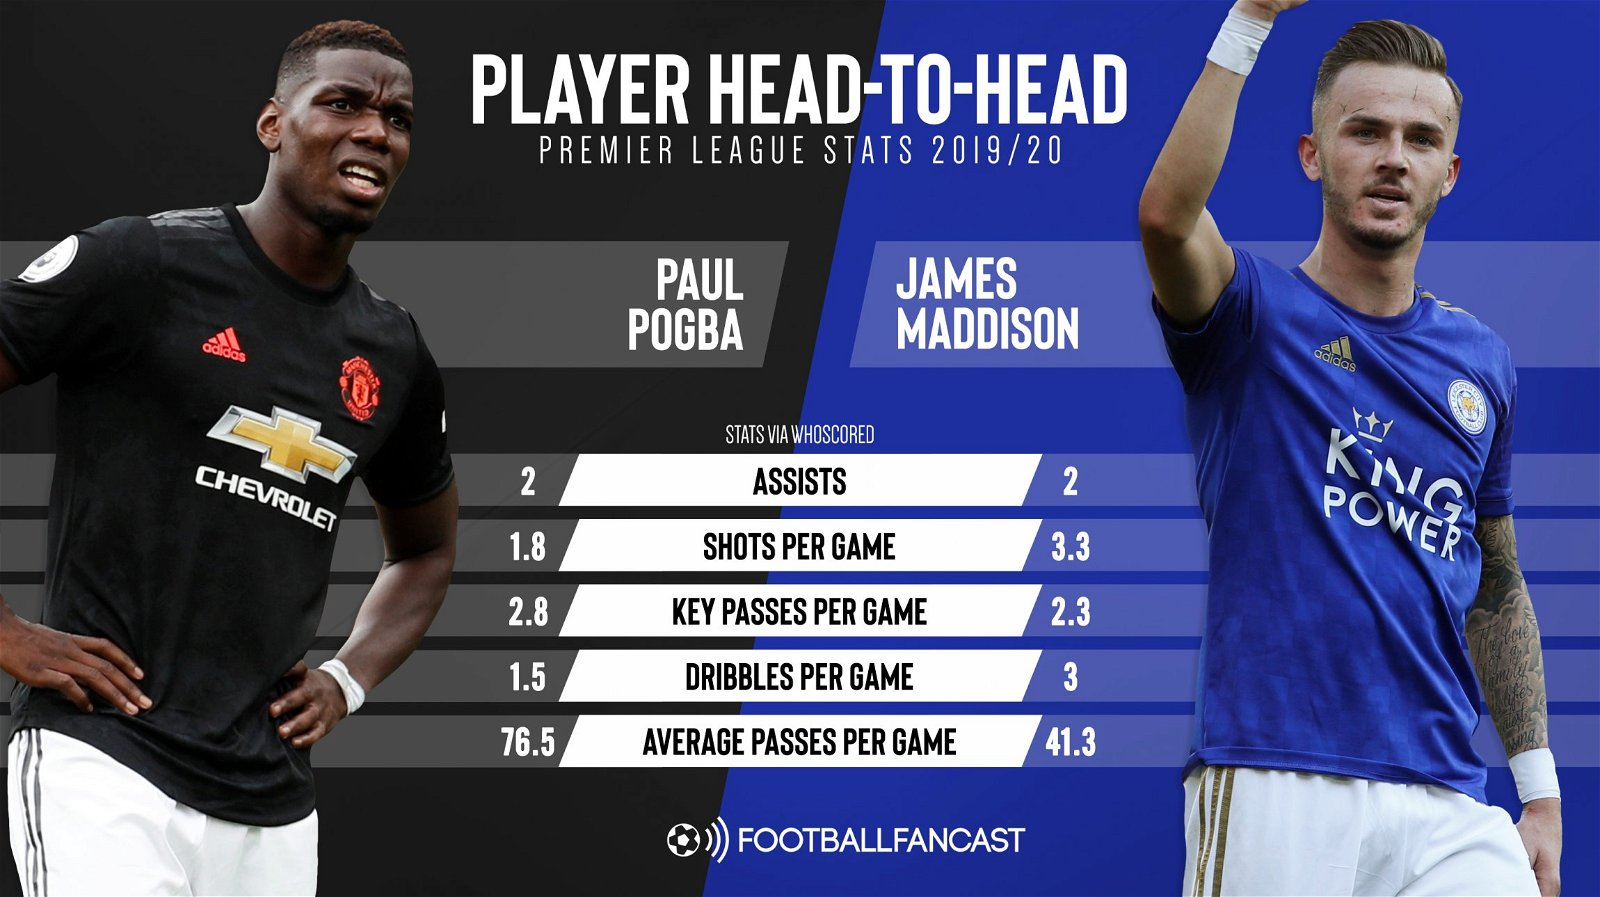 2 assists each: Pogba's battle with 3 dribbles per game star may decide Saturday clash – opinion